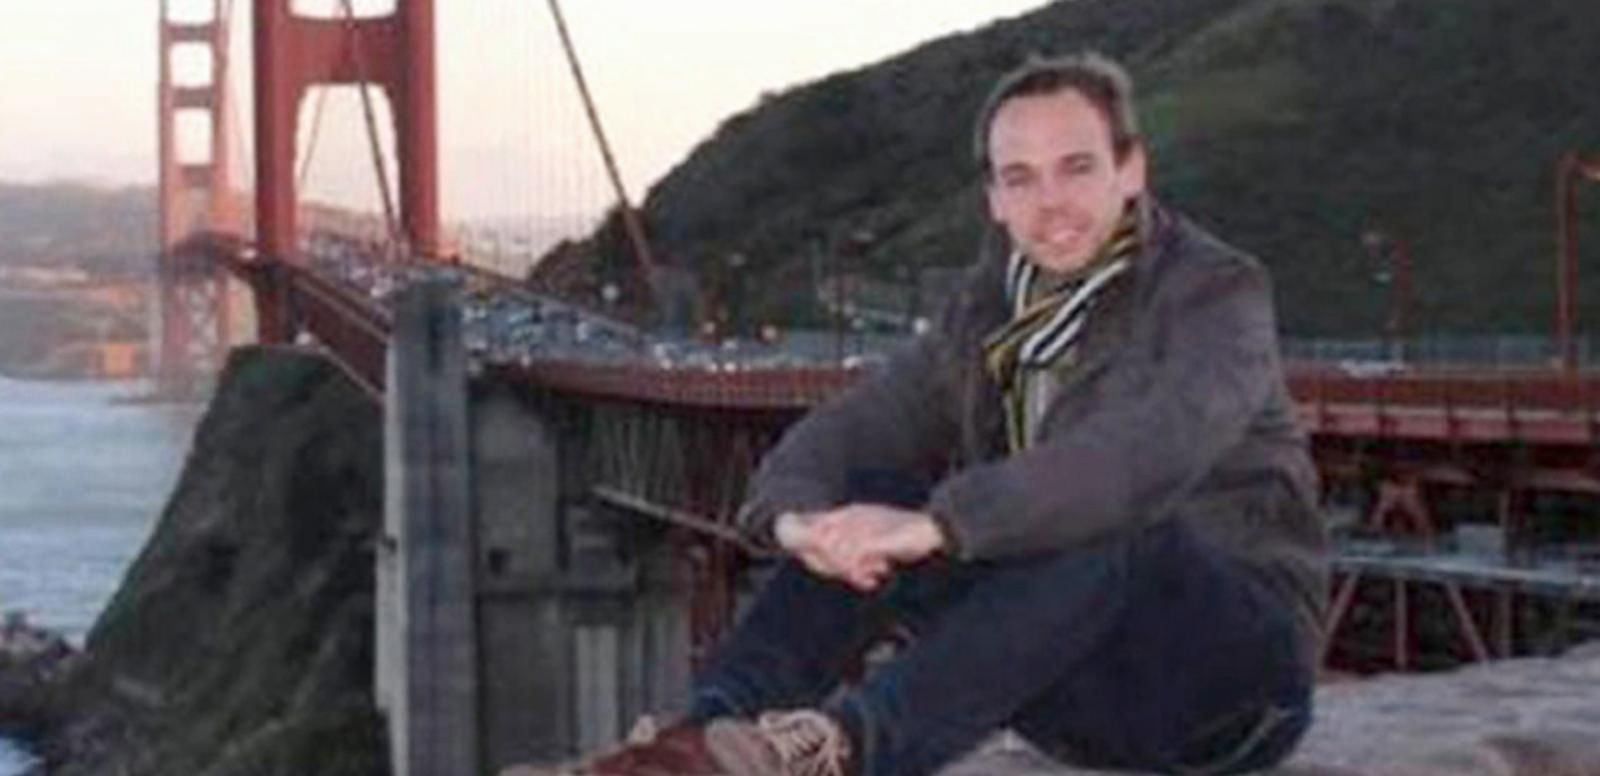 VIDEO: Germanwings Co-Pilot's Home Being Searched For Clues